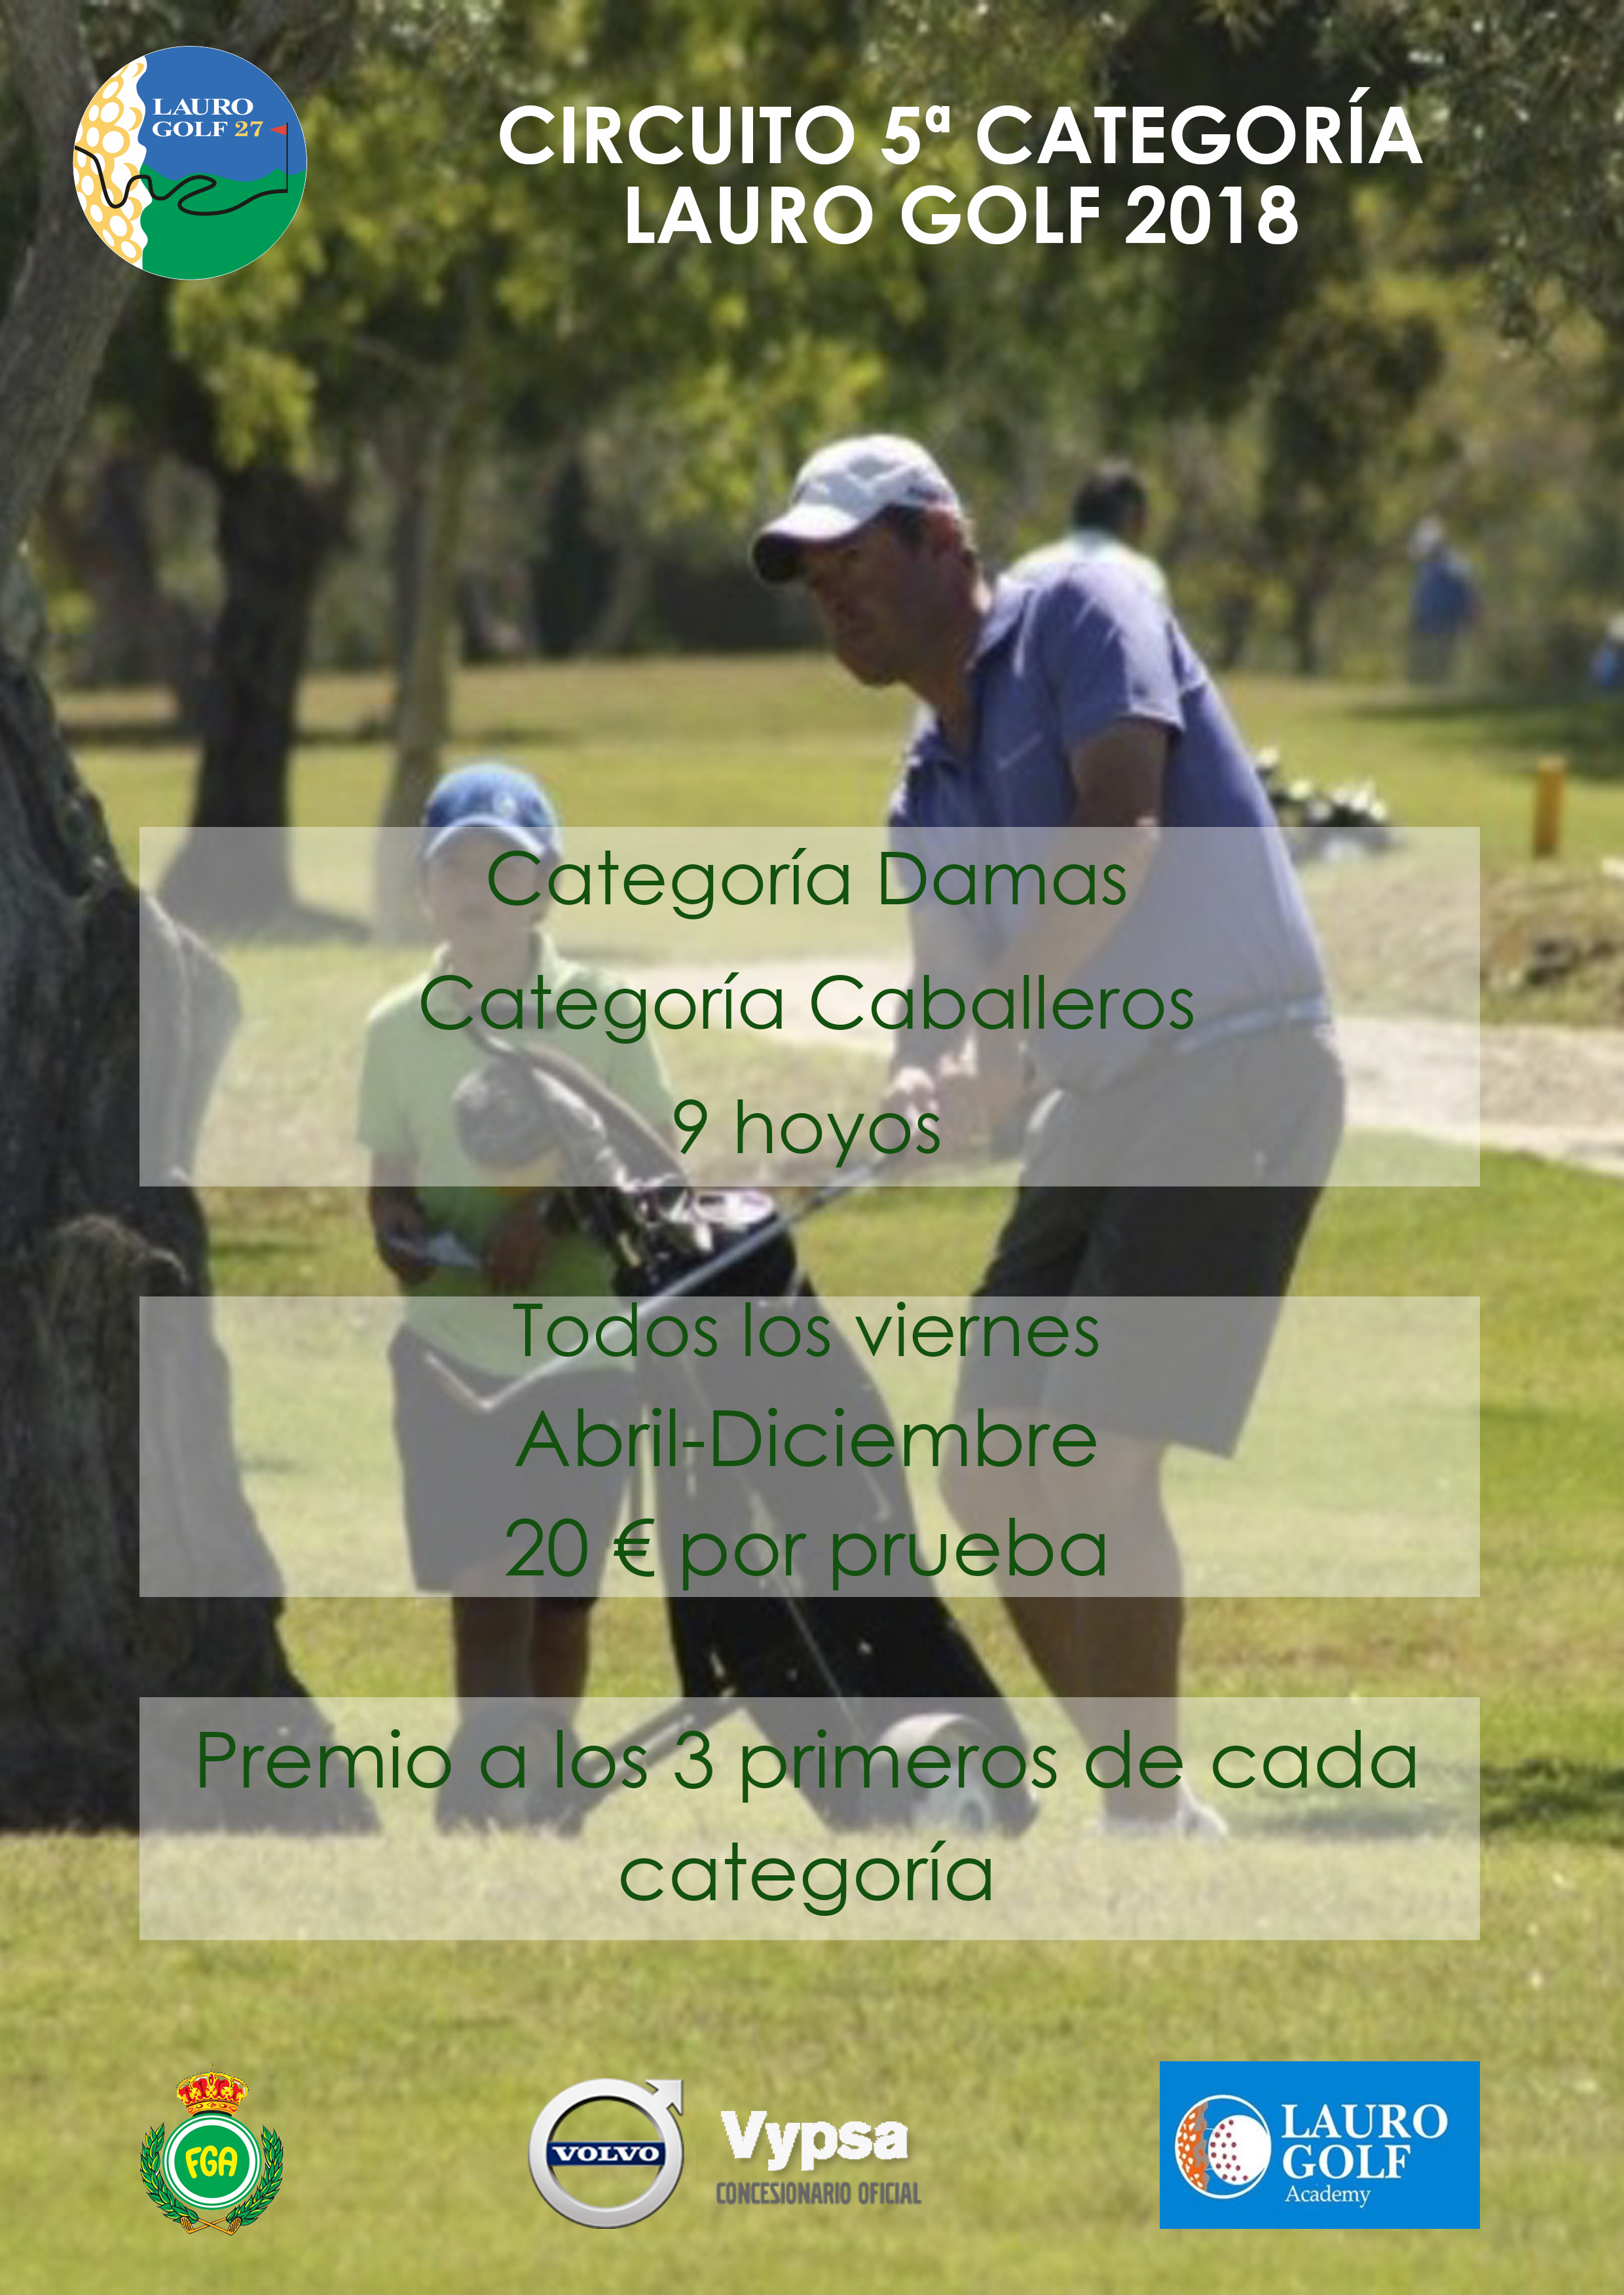 Lauro Golf continues its bid for golf's base with the Organization of two own circuits.